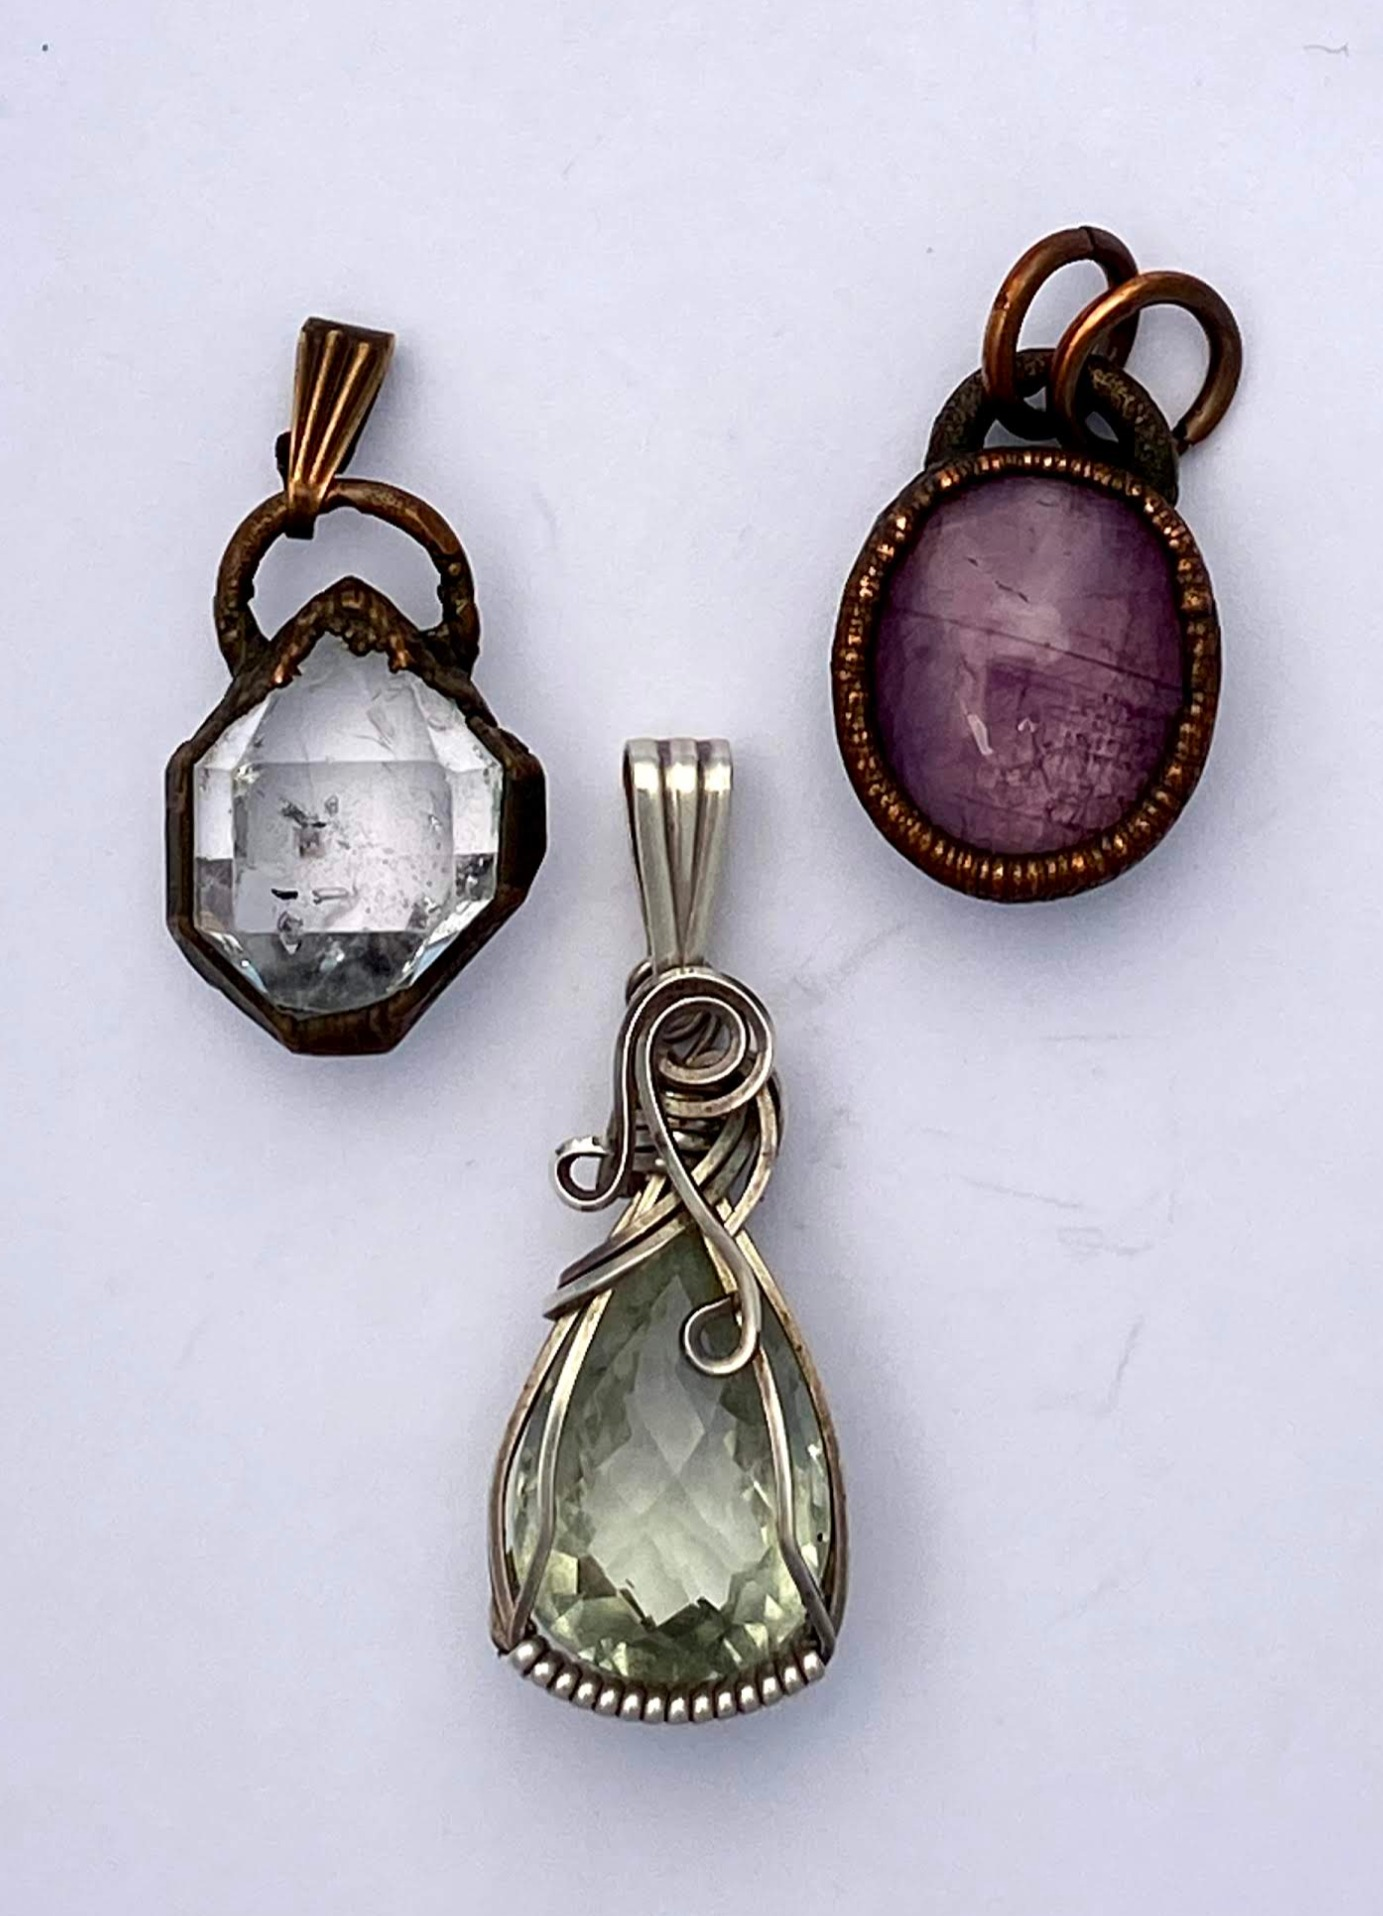 Herkimer diamond, star ruby, and green amethyst